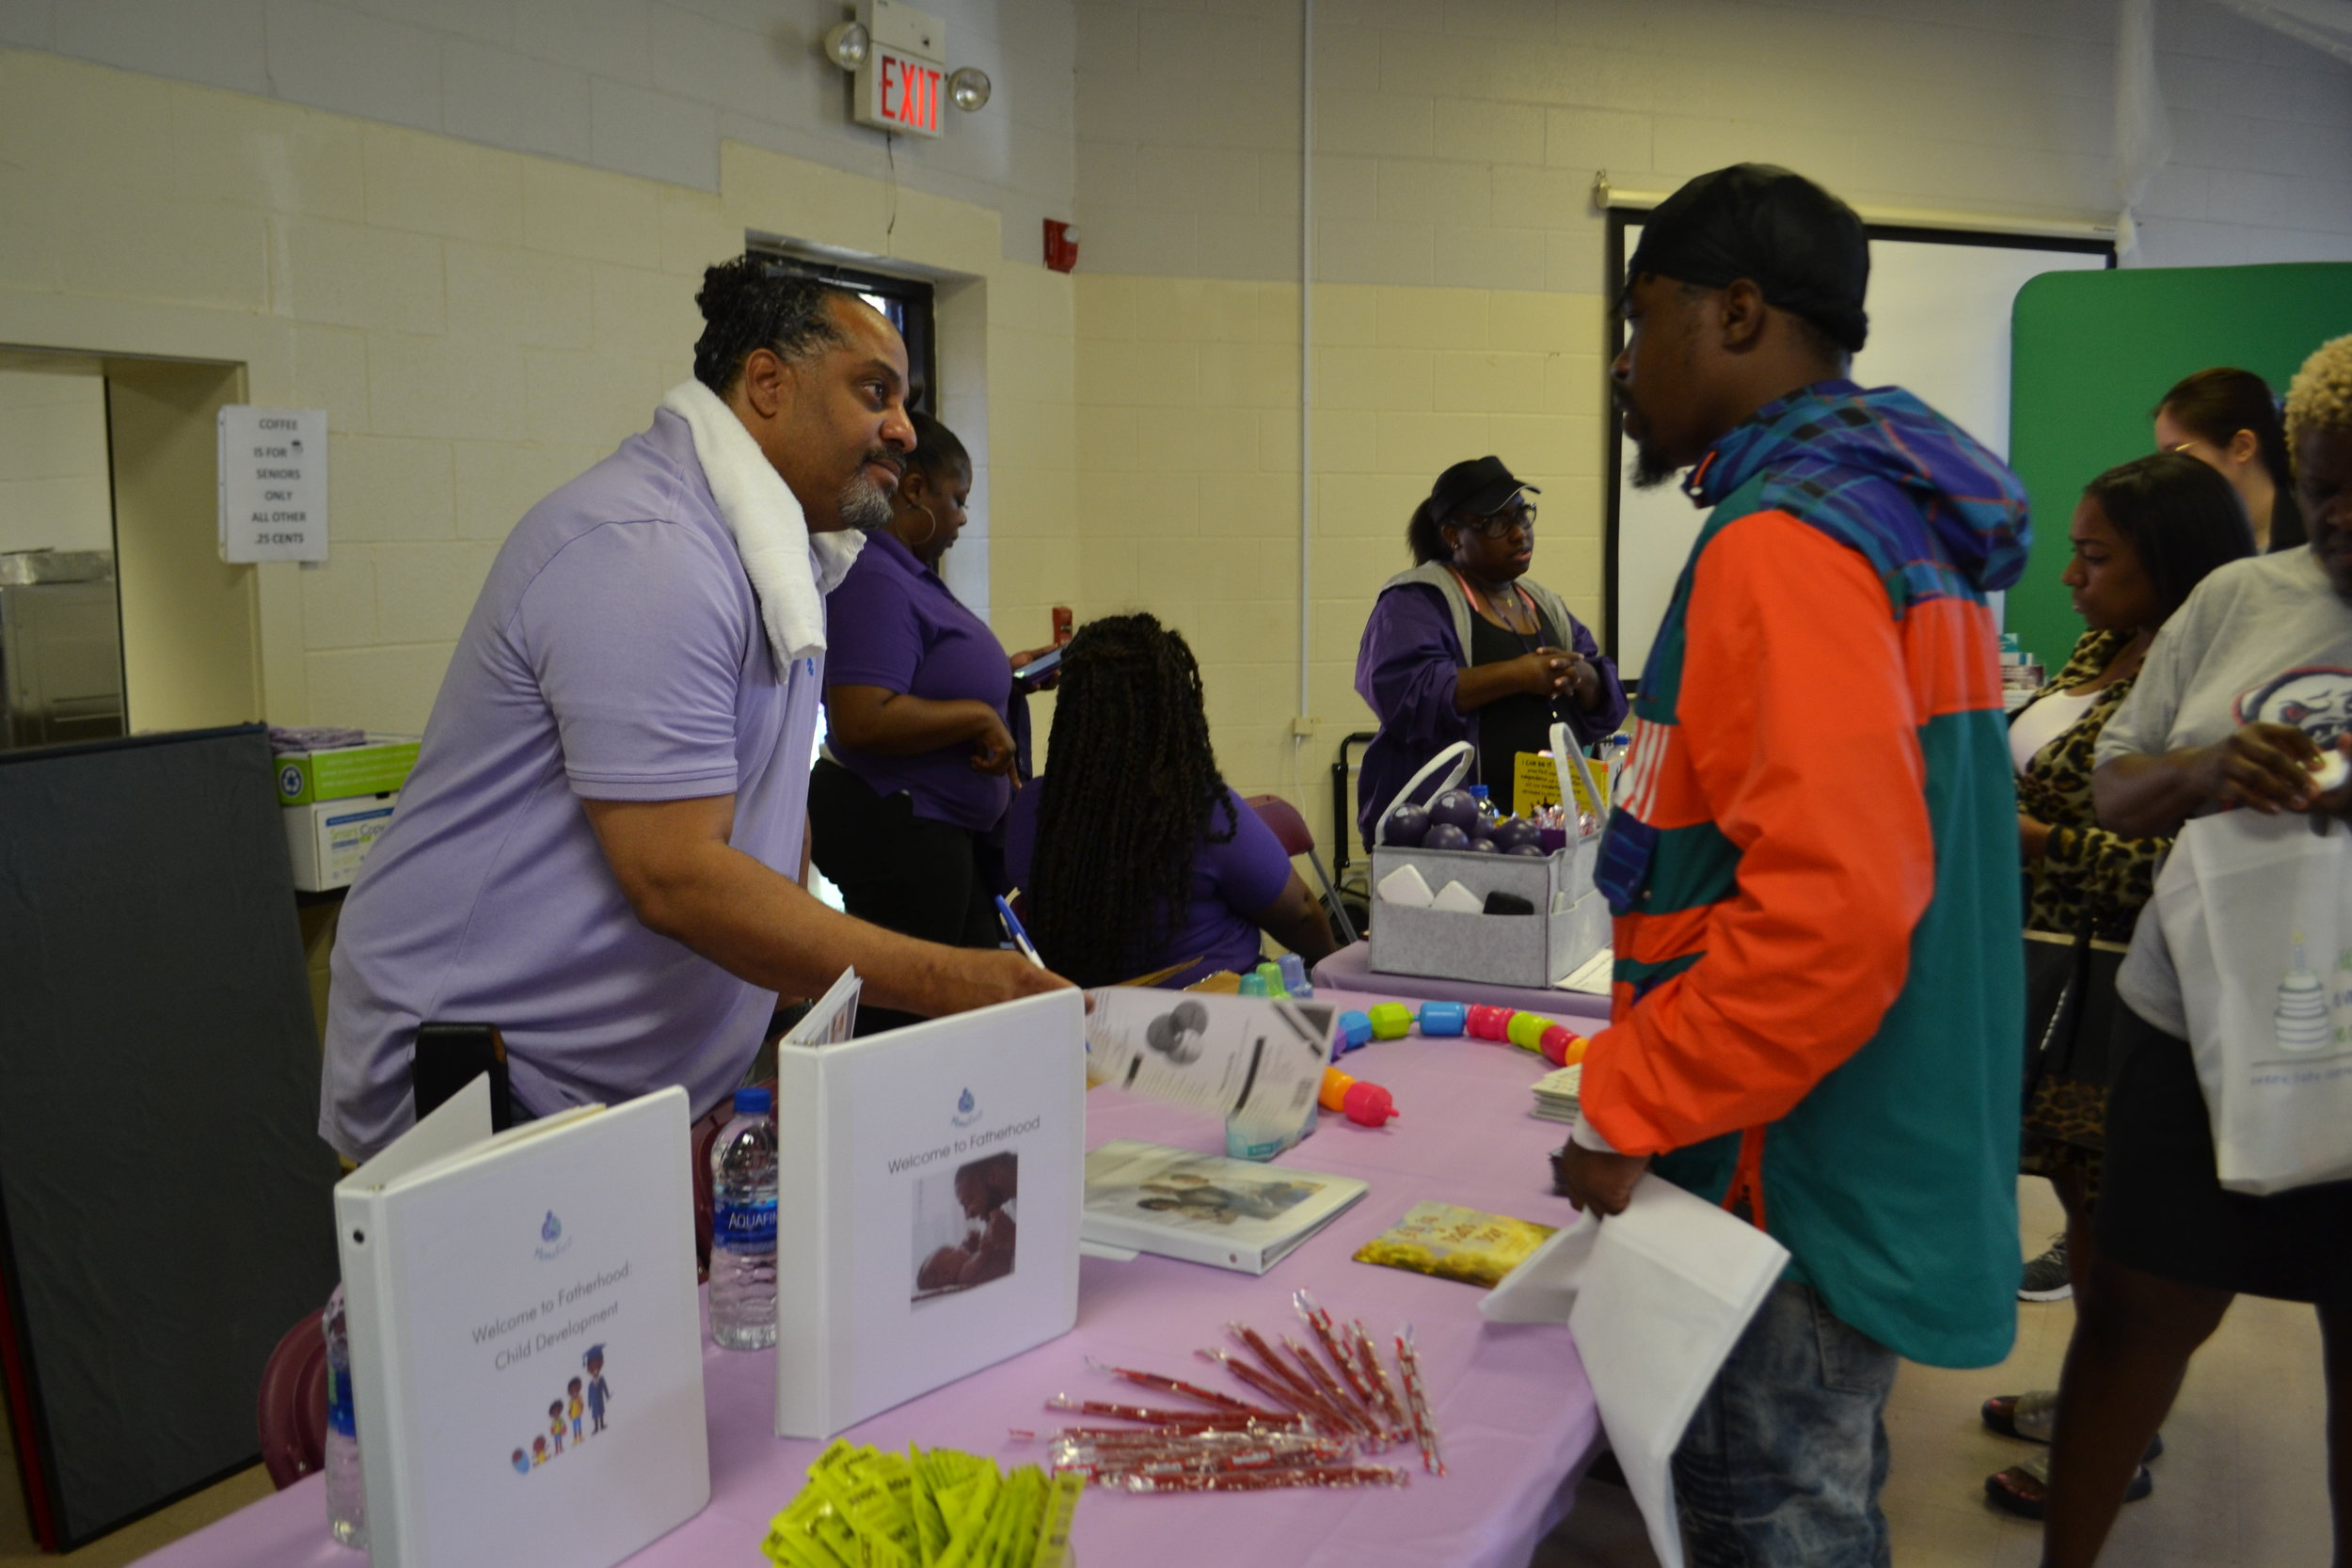 MomsFirst Fatherhood Coordinator, Ronald White, engaging with a father at the One Life, One Voice, One Community Baby Buggy Walk event for National Infant Mortality Awareness Month.